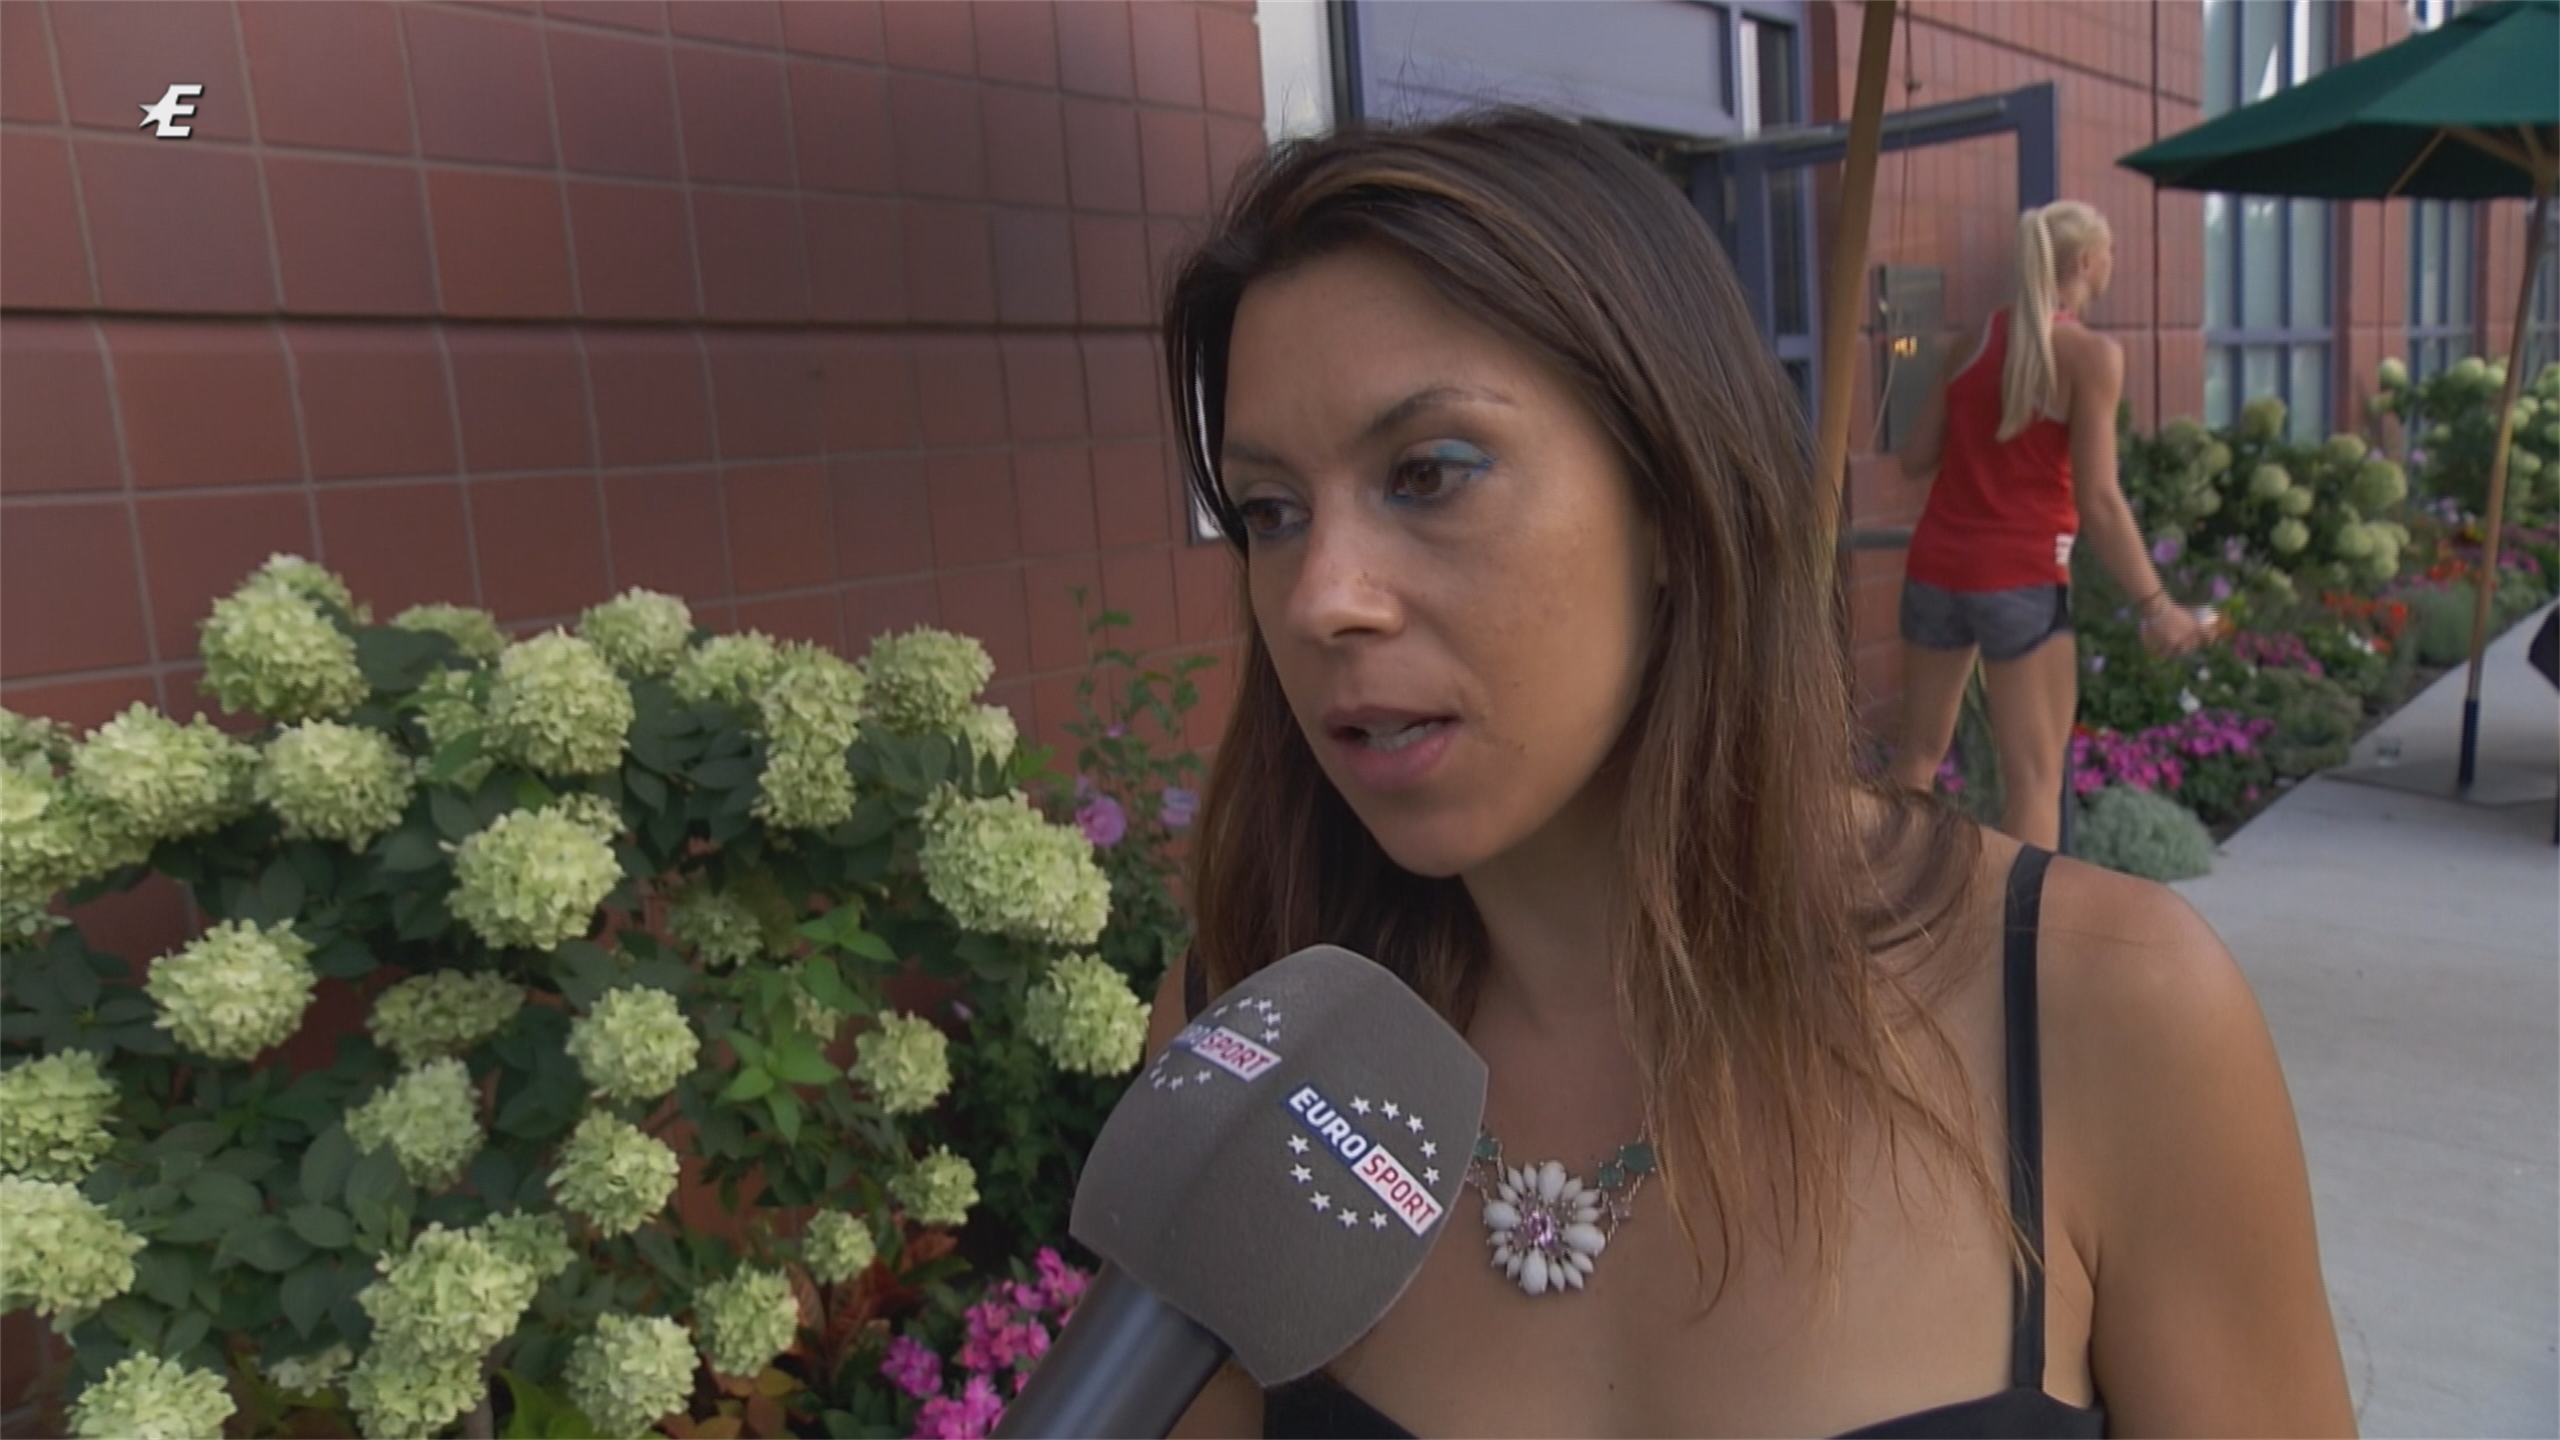 Marion Bartoli lauds Andy Murray's 'physicality' in Mannarino fightback - US Open